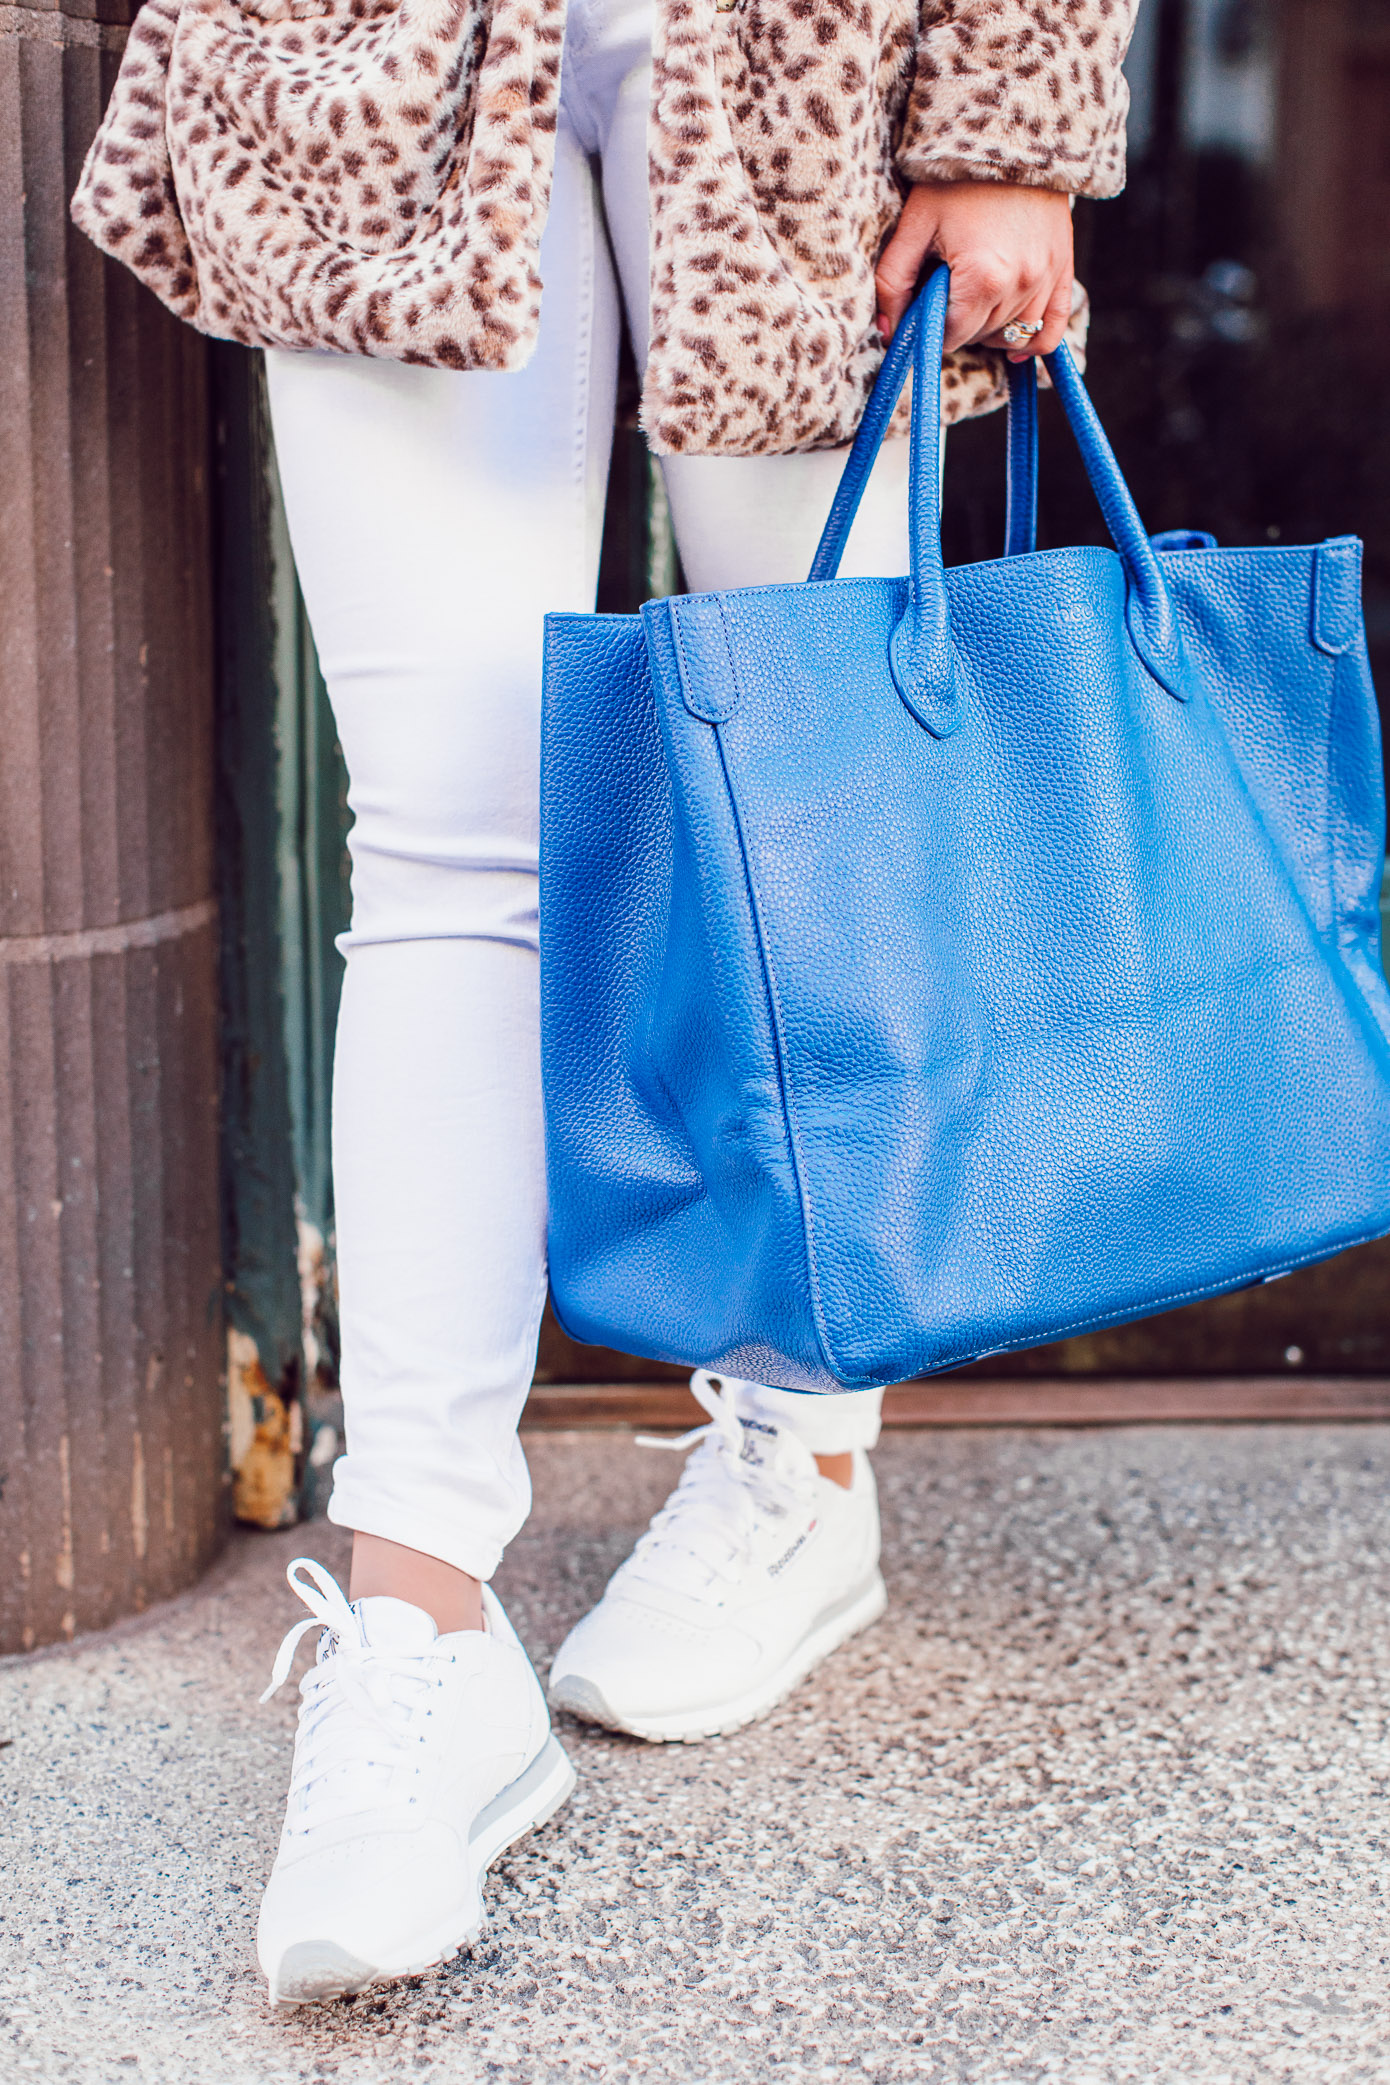 The BEST White Jeans to Transition into Spring | Beck Bags Havana Oversized Tote, Vineyard Vines White Jeans, Reebok Classic Leather Sneaker featured on Louella Reese